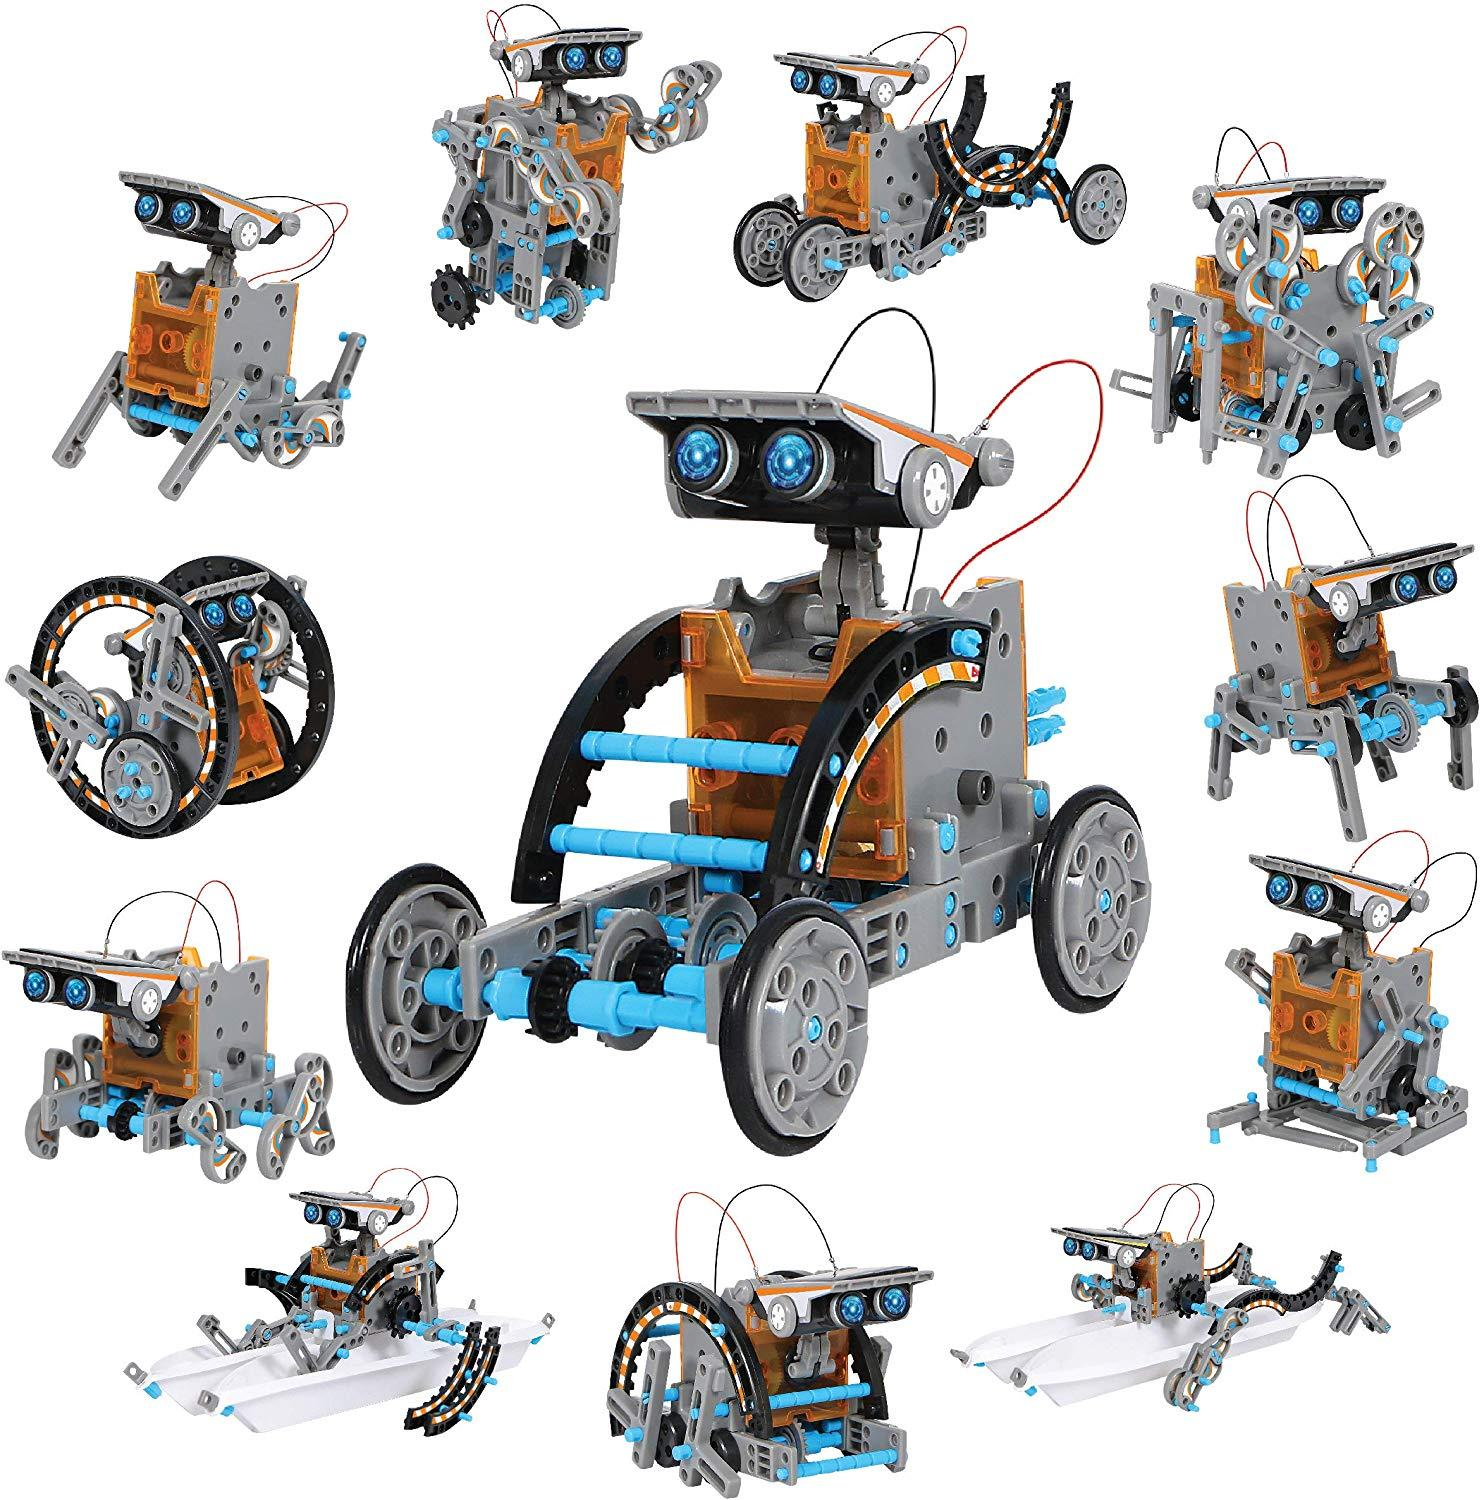 Kids Mindblown STEM 12-in-1 Solar Robot Creation 190-Piece Kit with Working Solar Powered Motorized Engine and Gears